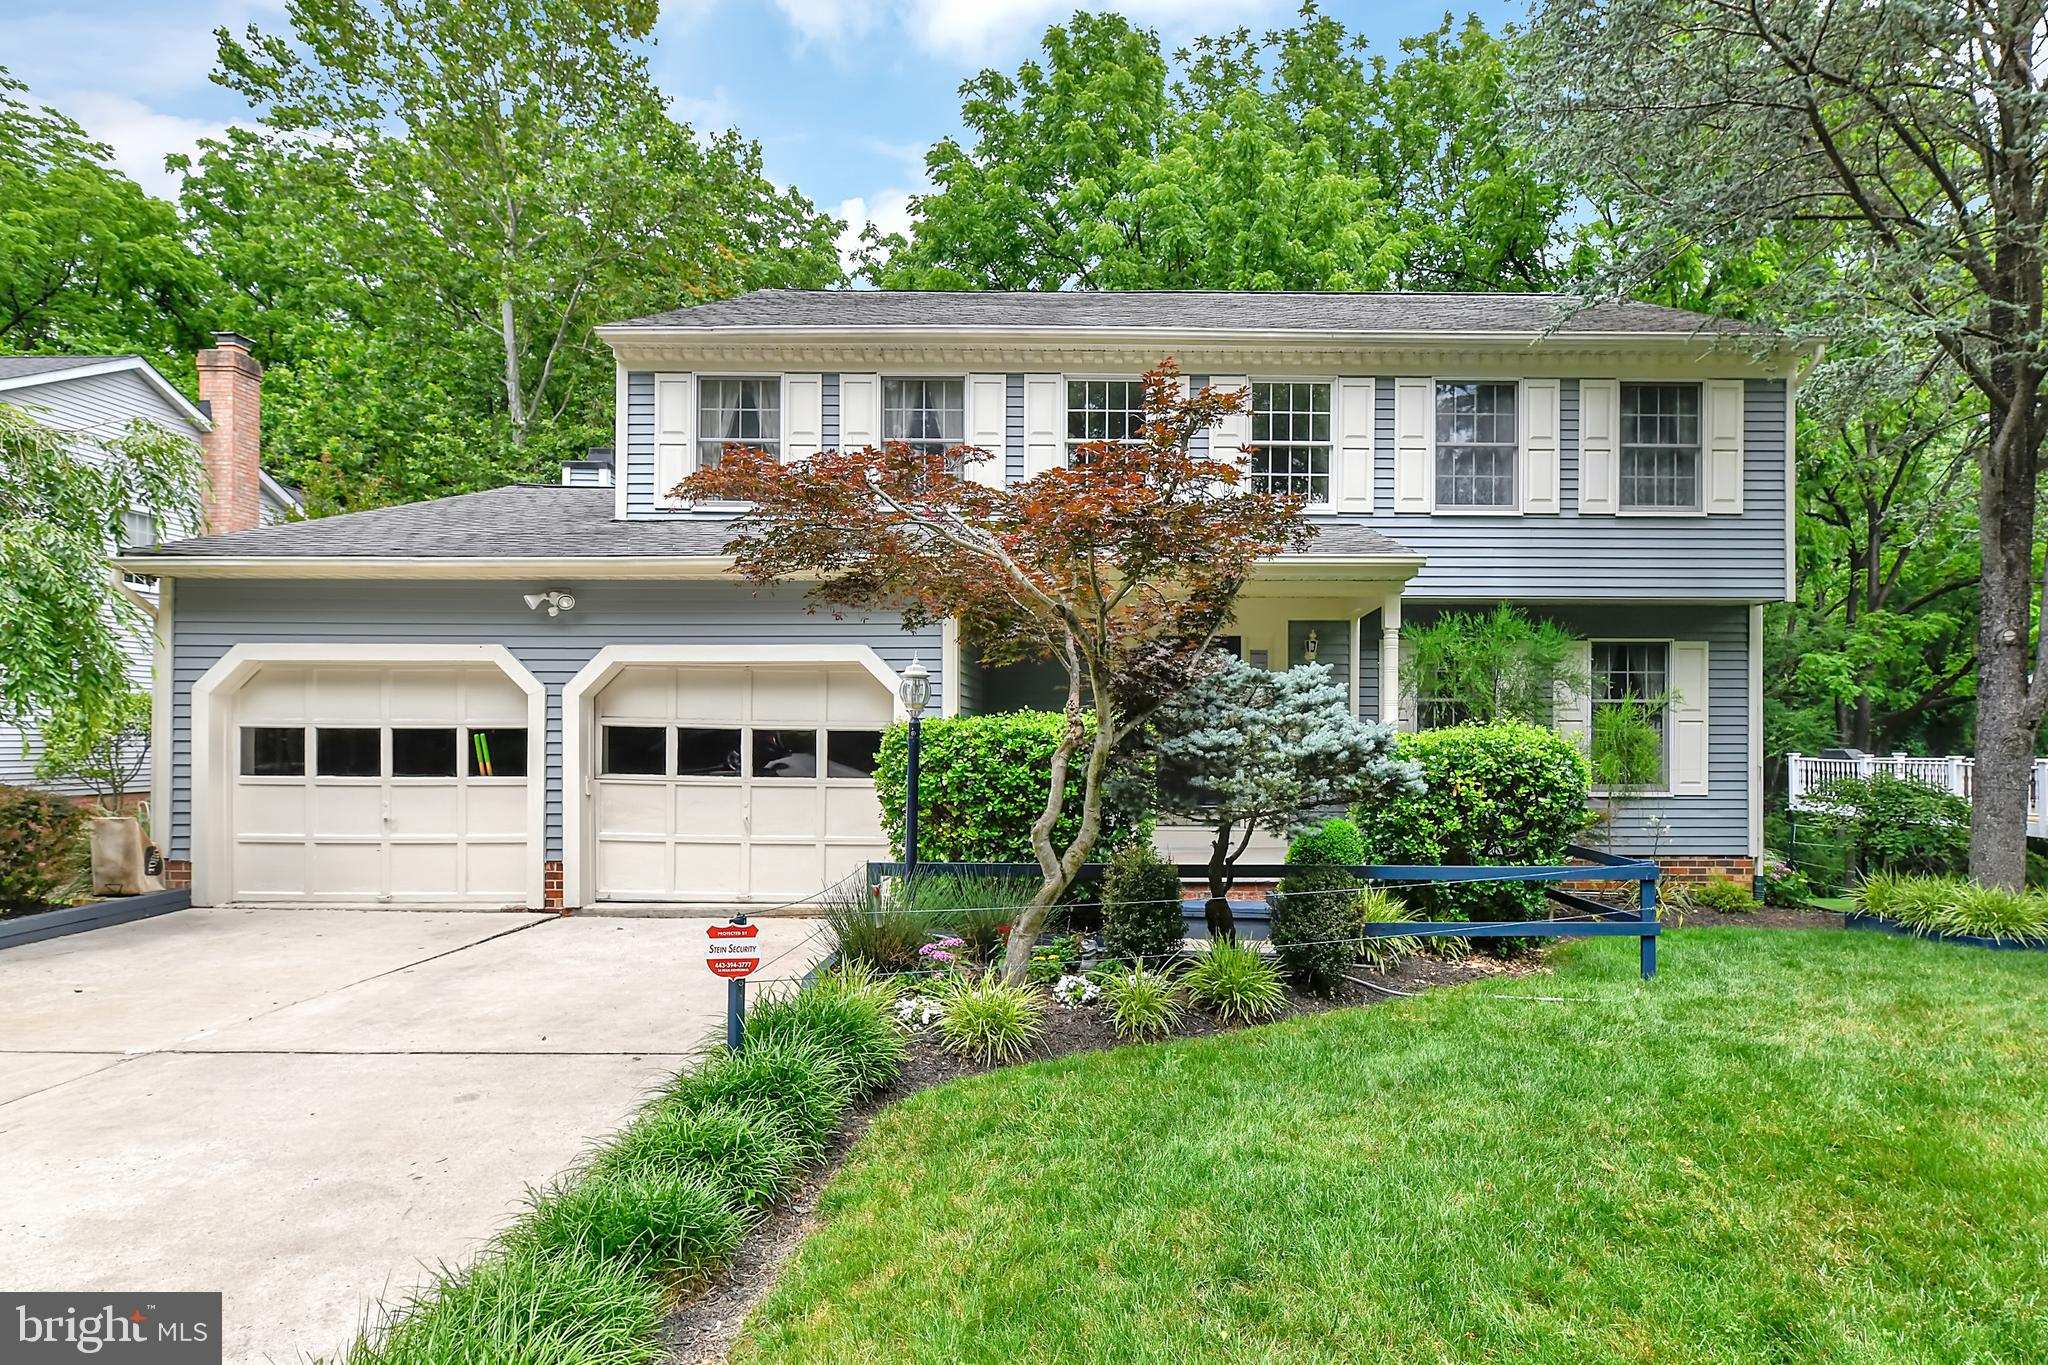 2804 MOORES VALLEY DRIVE, BALTIMORE, MD 21209